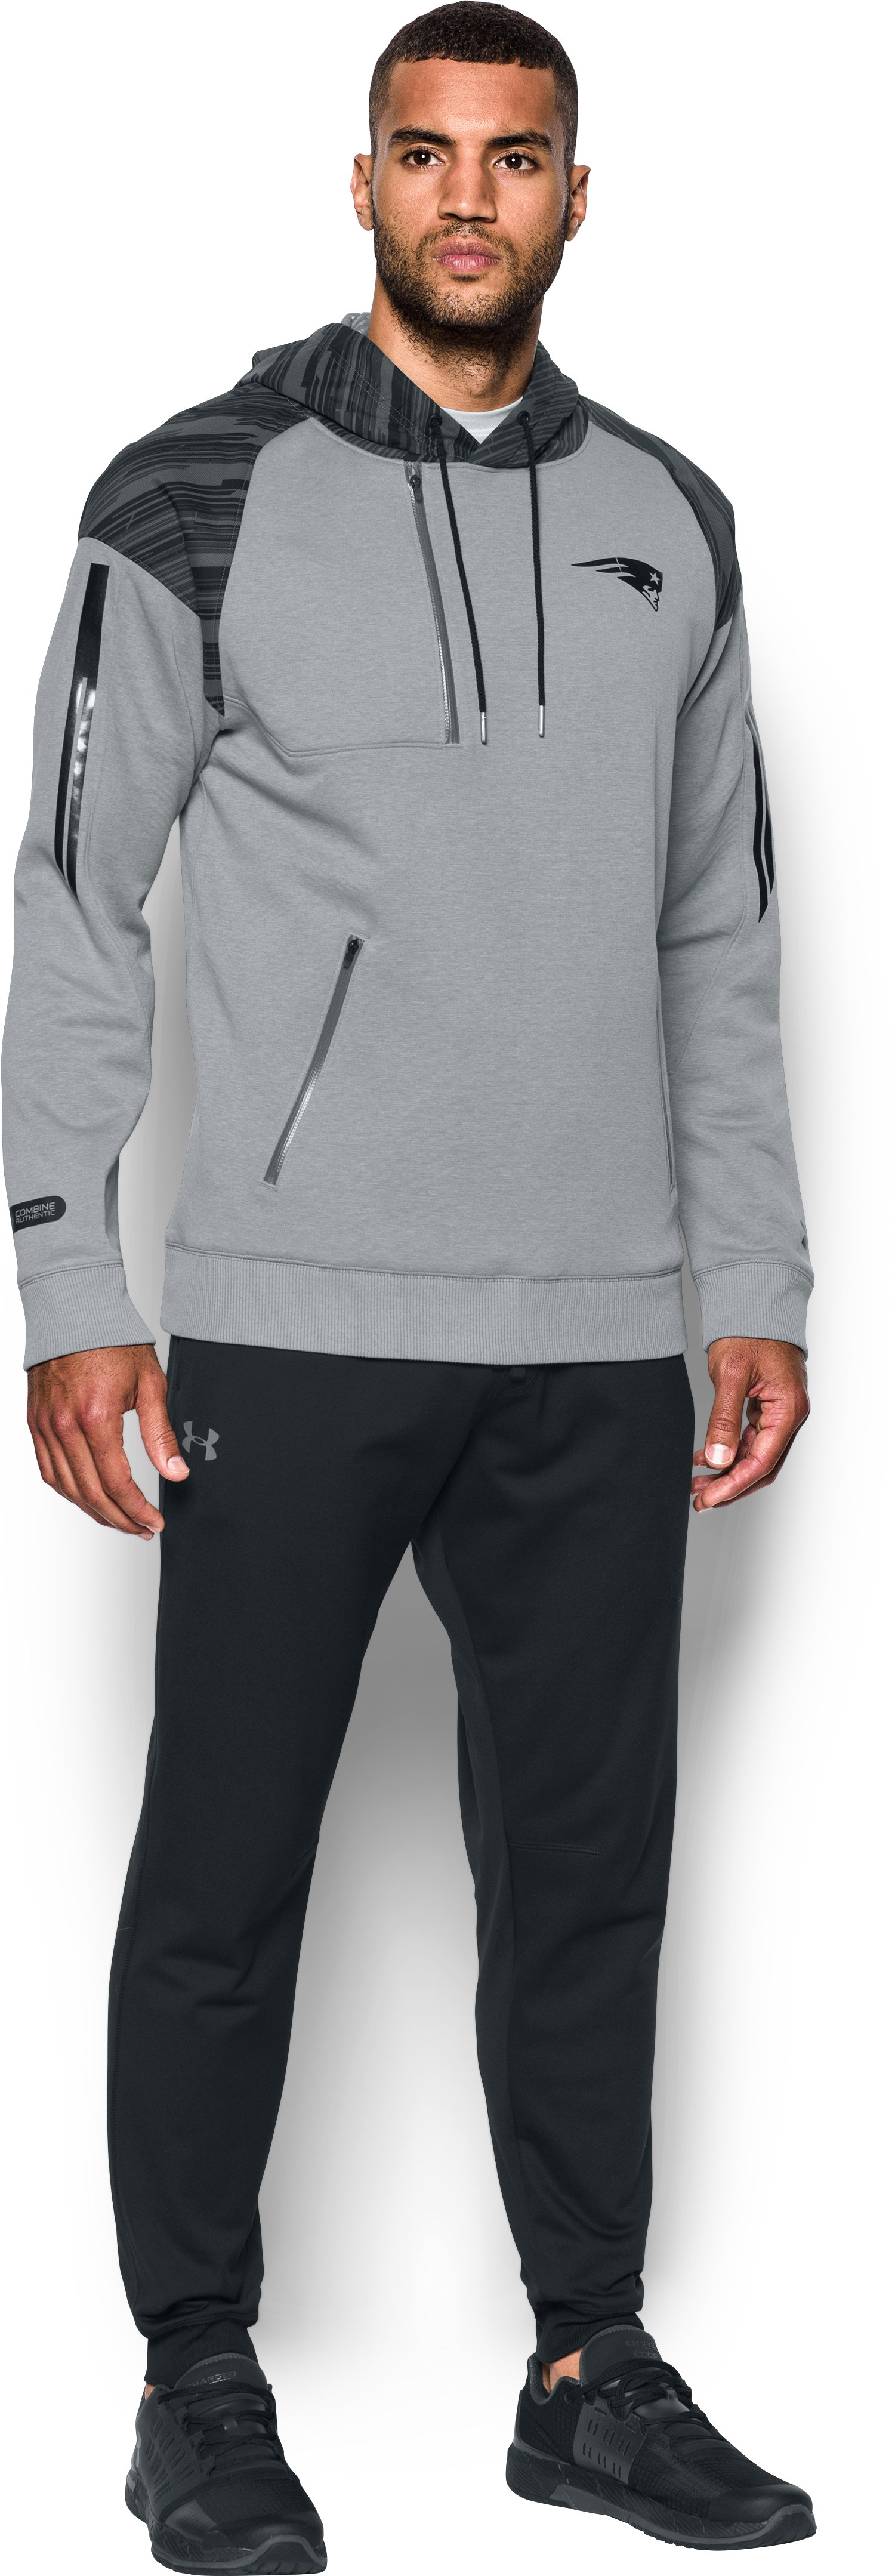 Men's NFL Combine Authentic UA Pinnacle Hoodie, NFL_NEW ENGLAND PATRIOTS_PINANCLE GRAY